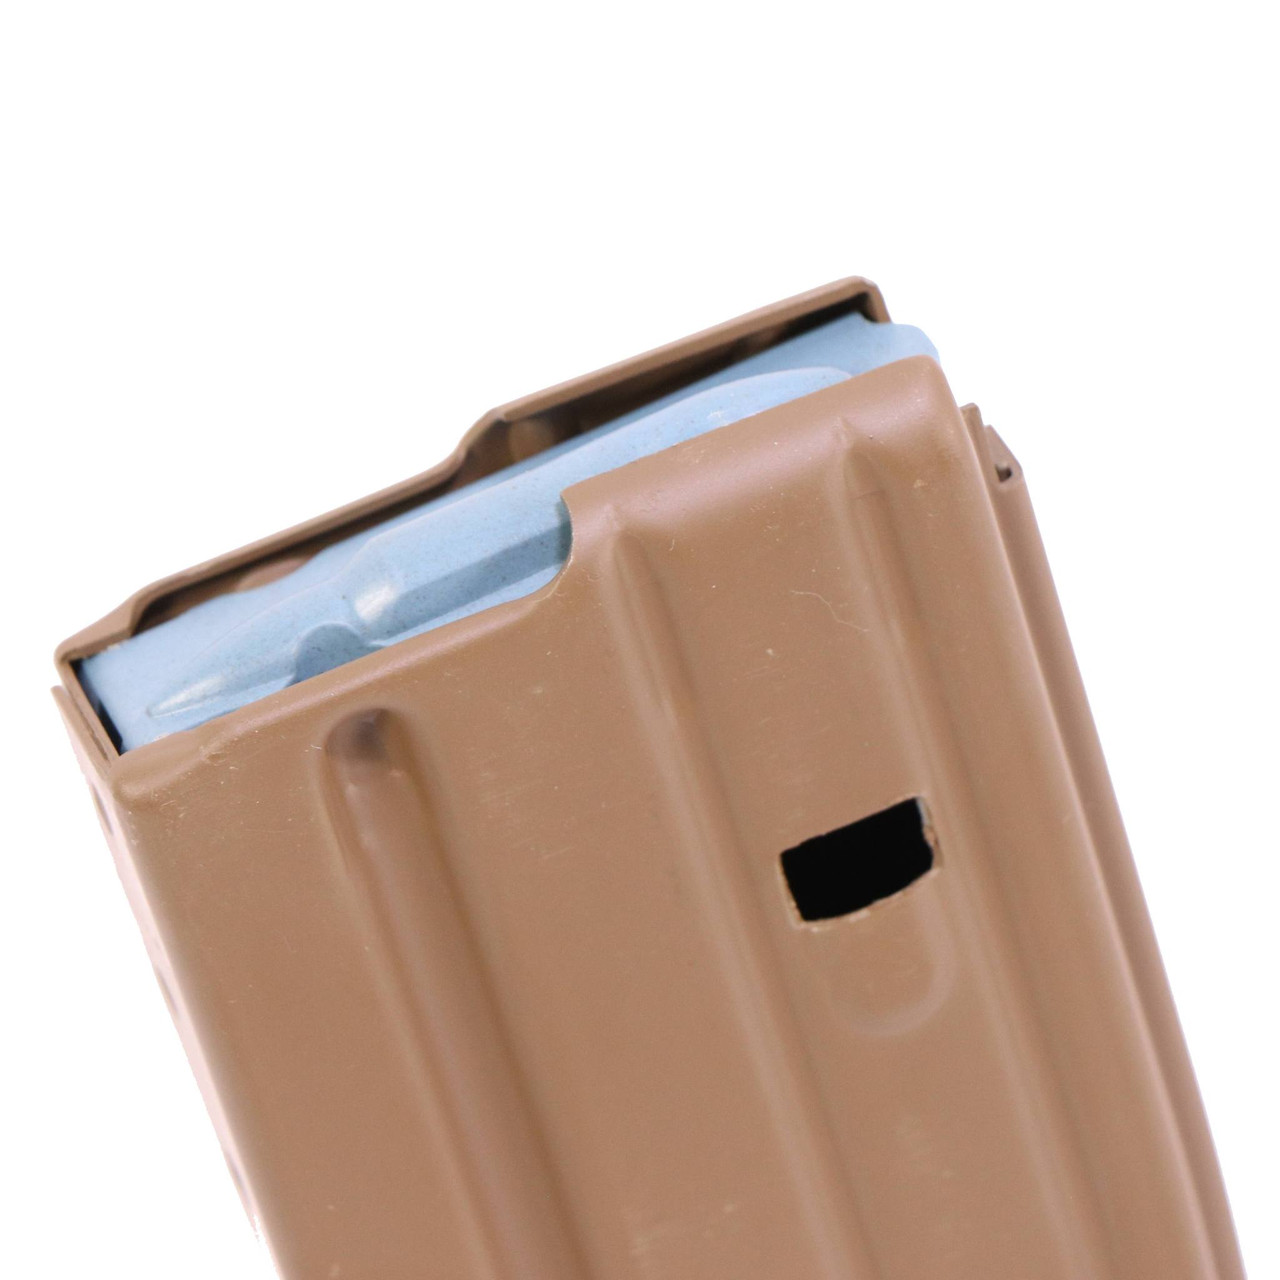 USGI ENHANCED PERFORMANCE EPM 30-ROUND AR/M4 BLUE FOLLOWER MAGAZINE BROWN ALUMINUM MAG